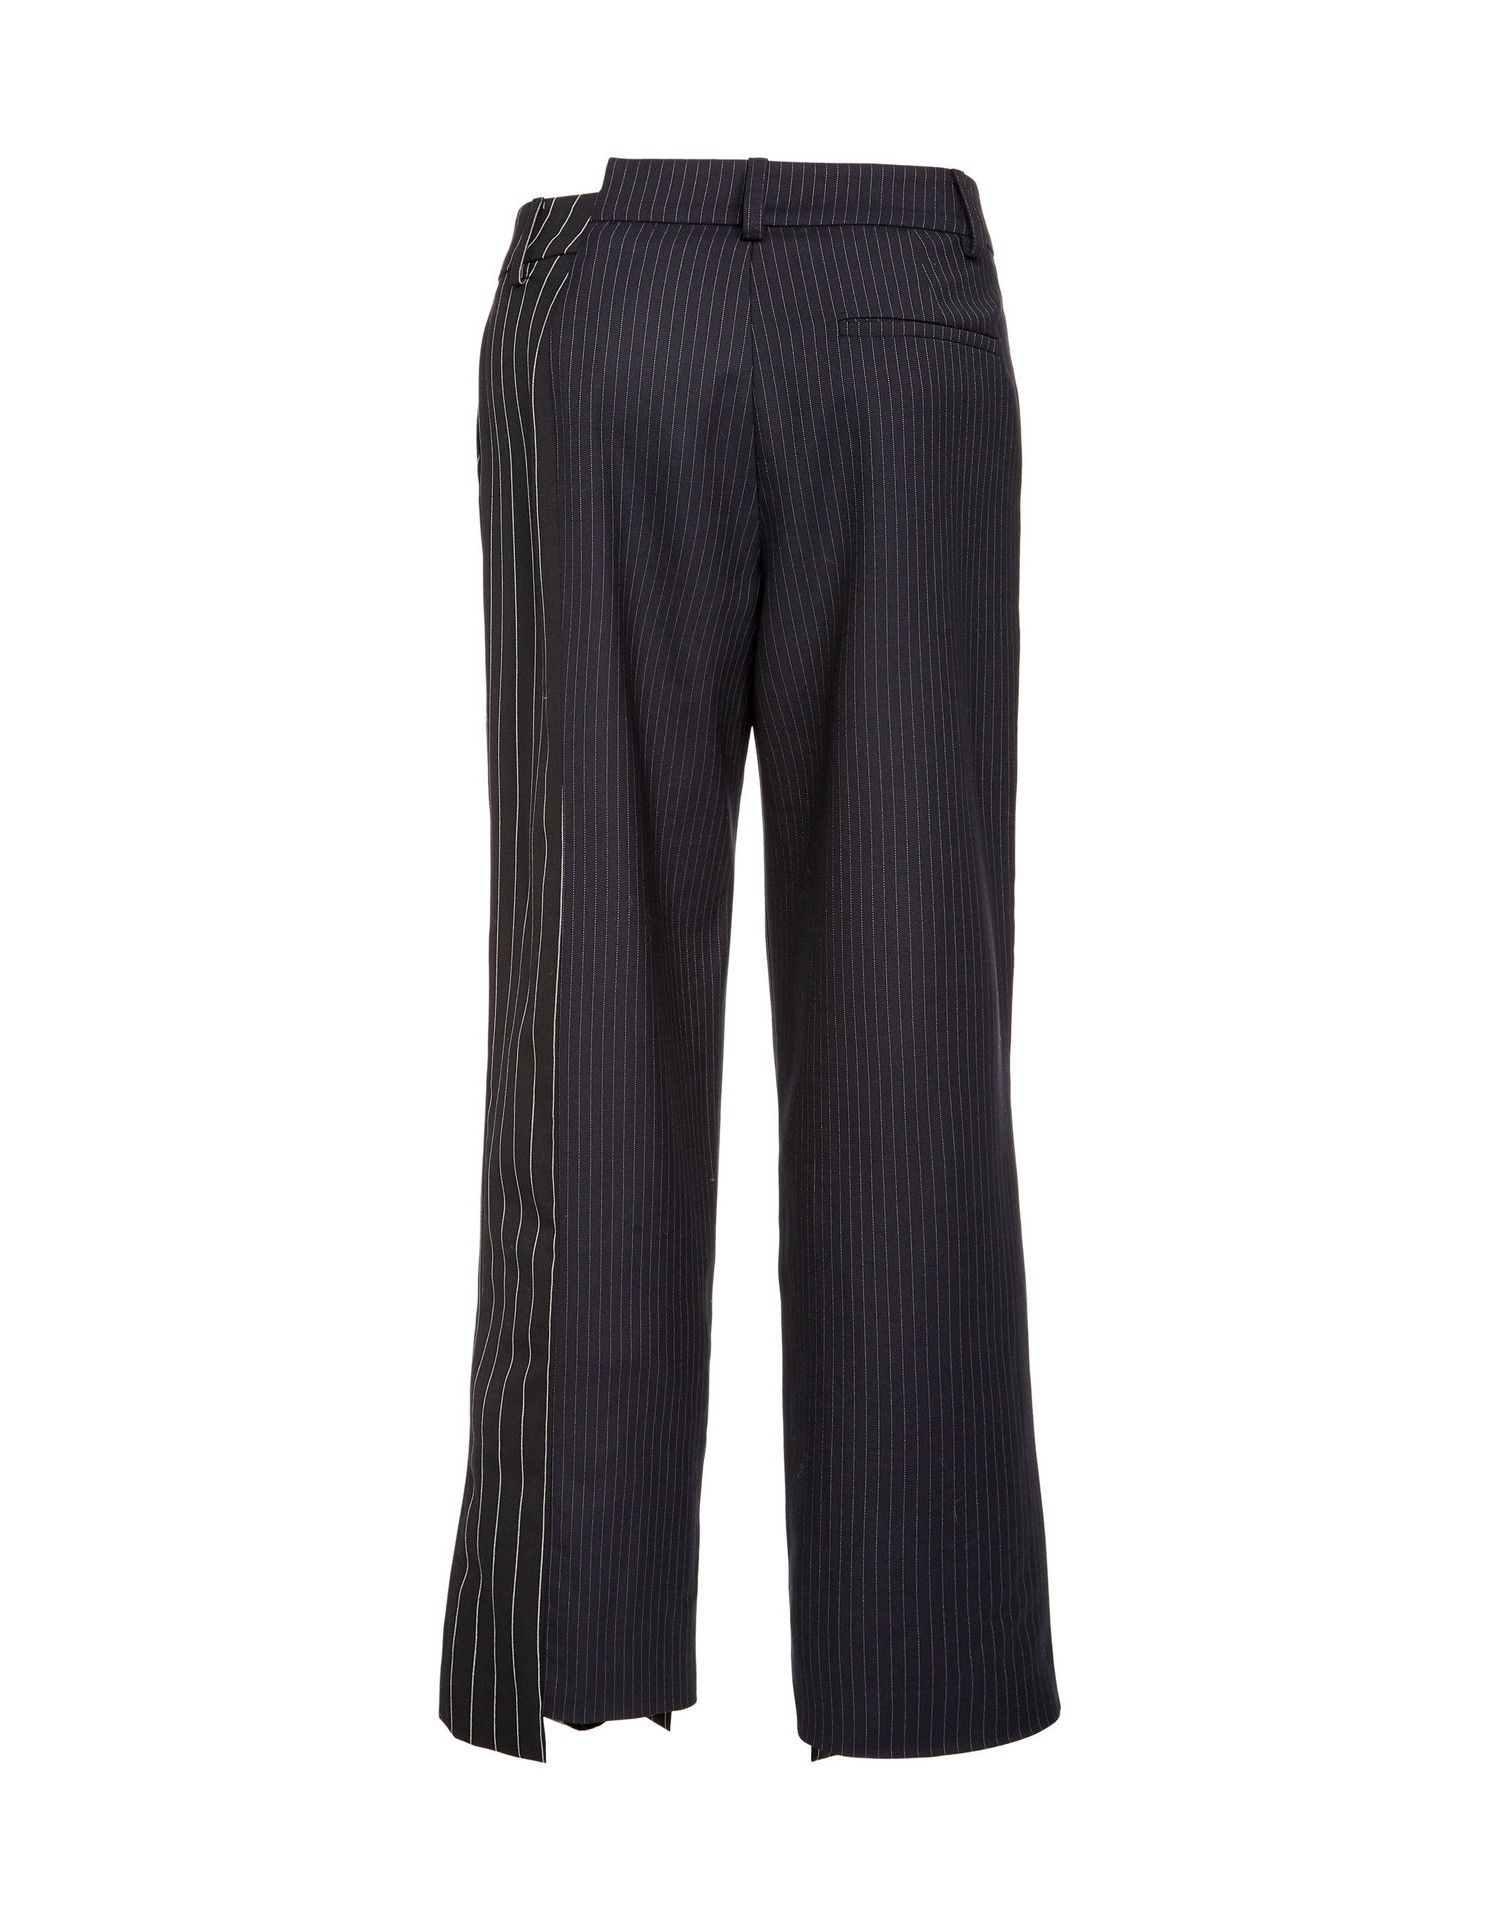 MONSE Two Tone Pinstripe Asymmetrical Pant Flat Back